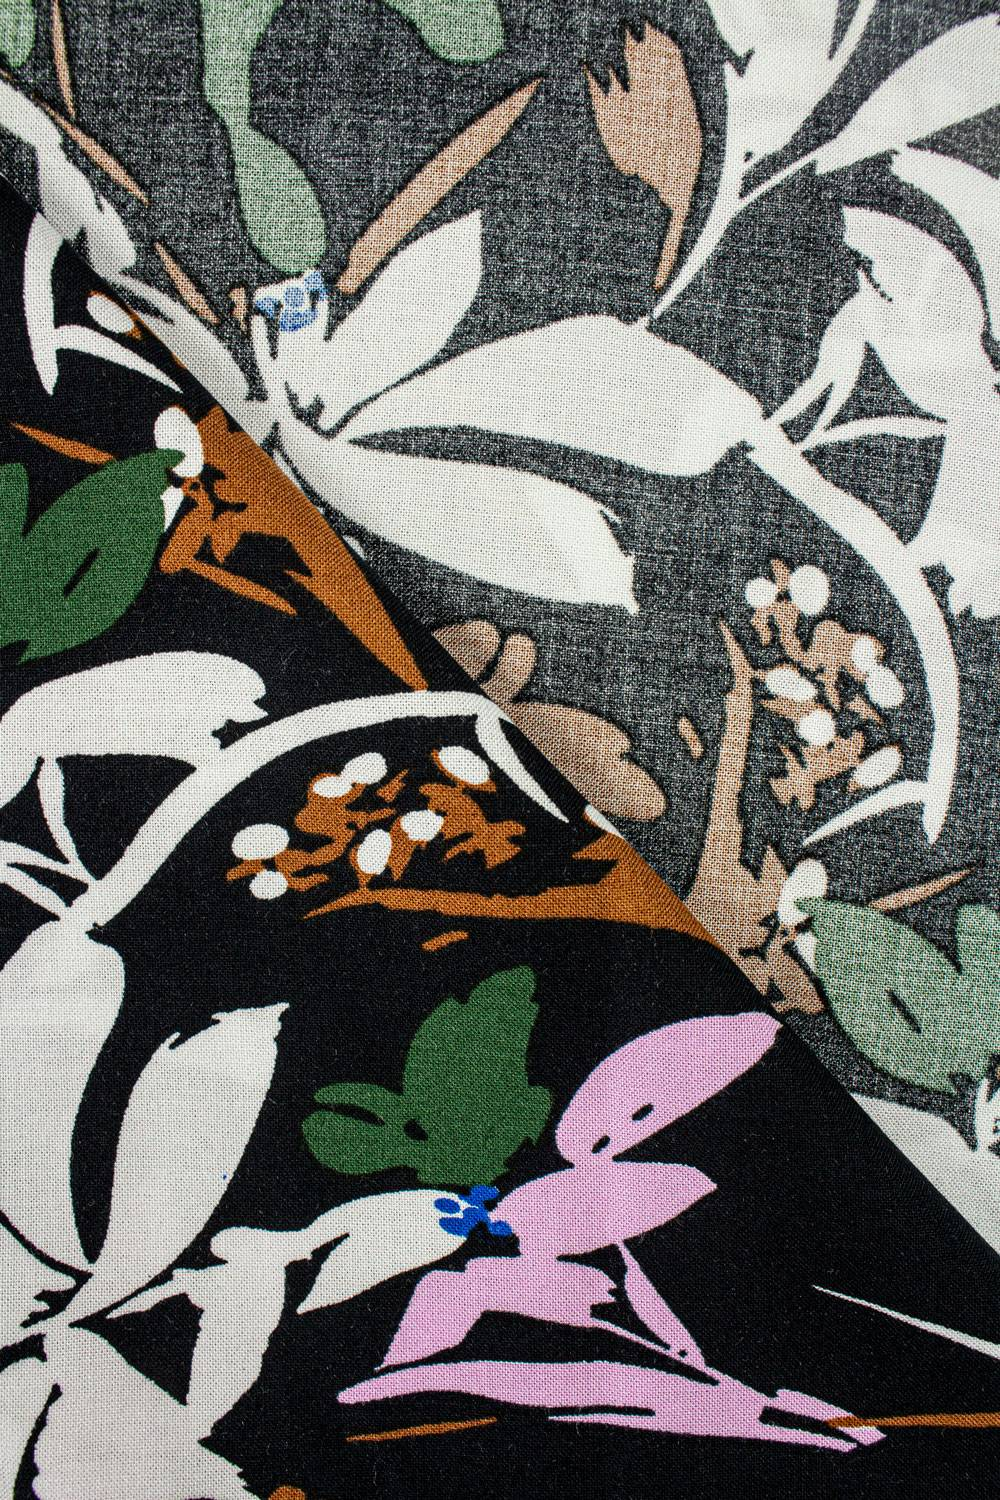 Fabric - Viscose - Black With Leaves - 140 cm - 130 g/m2